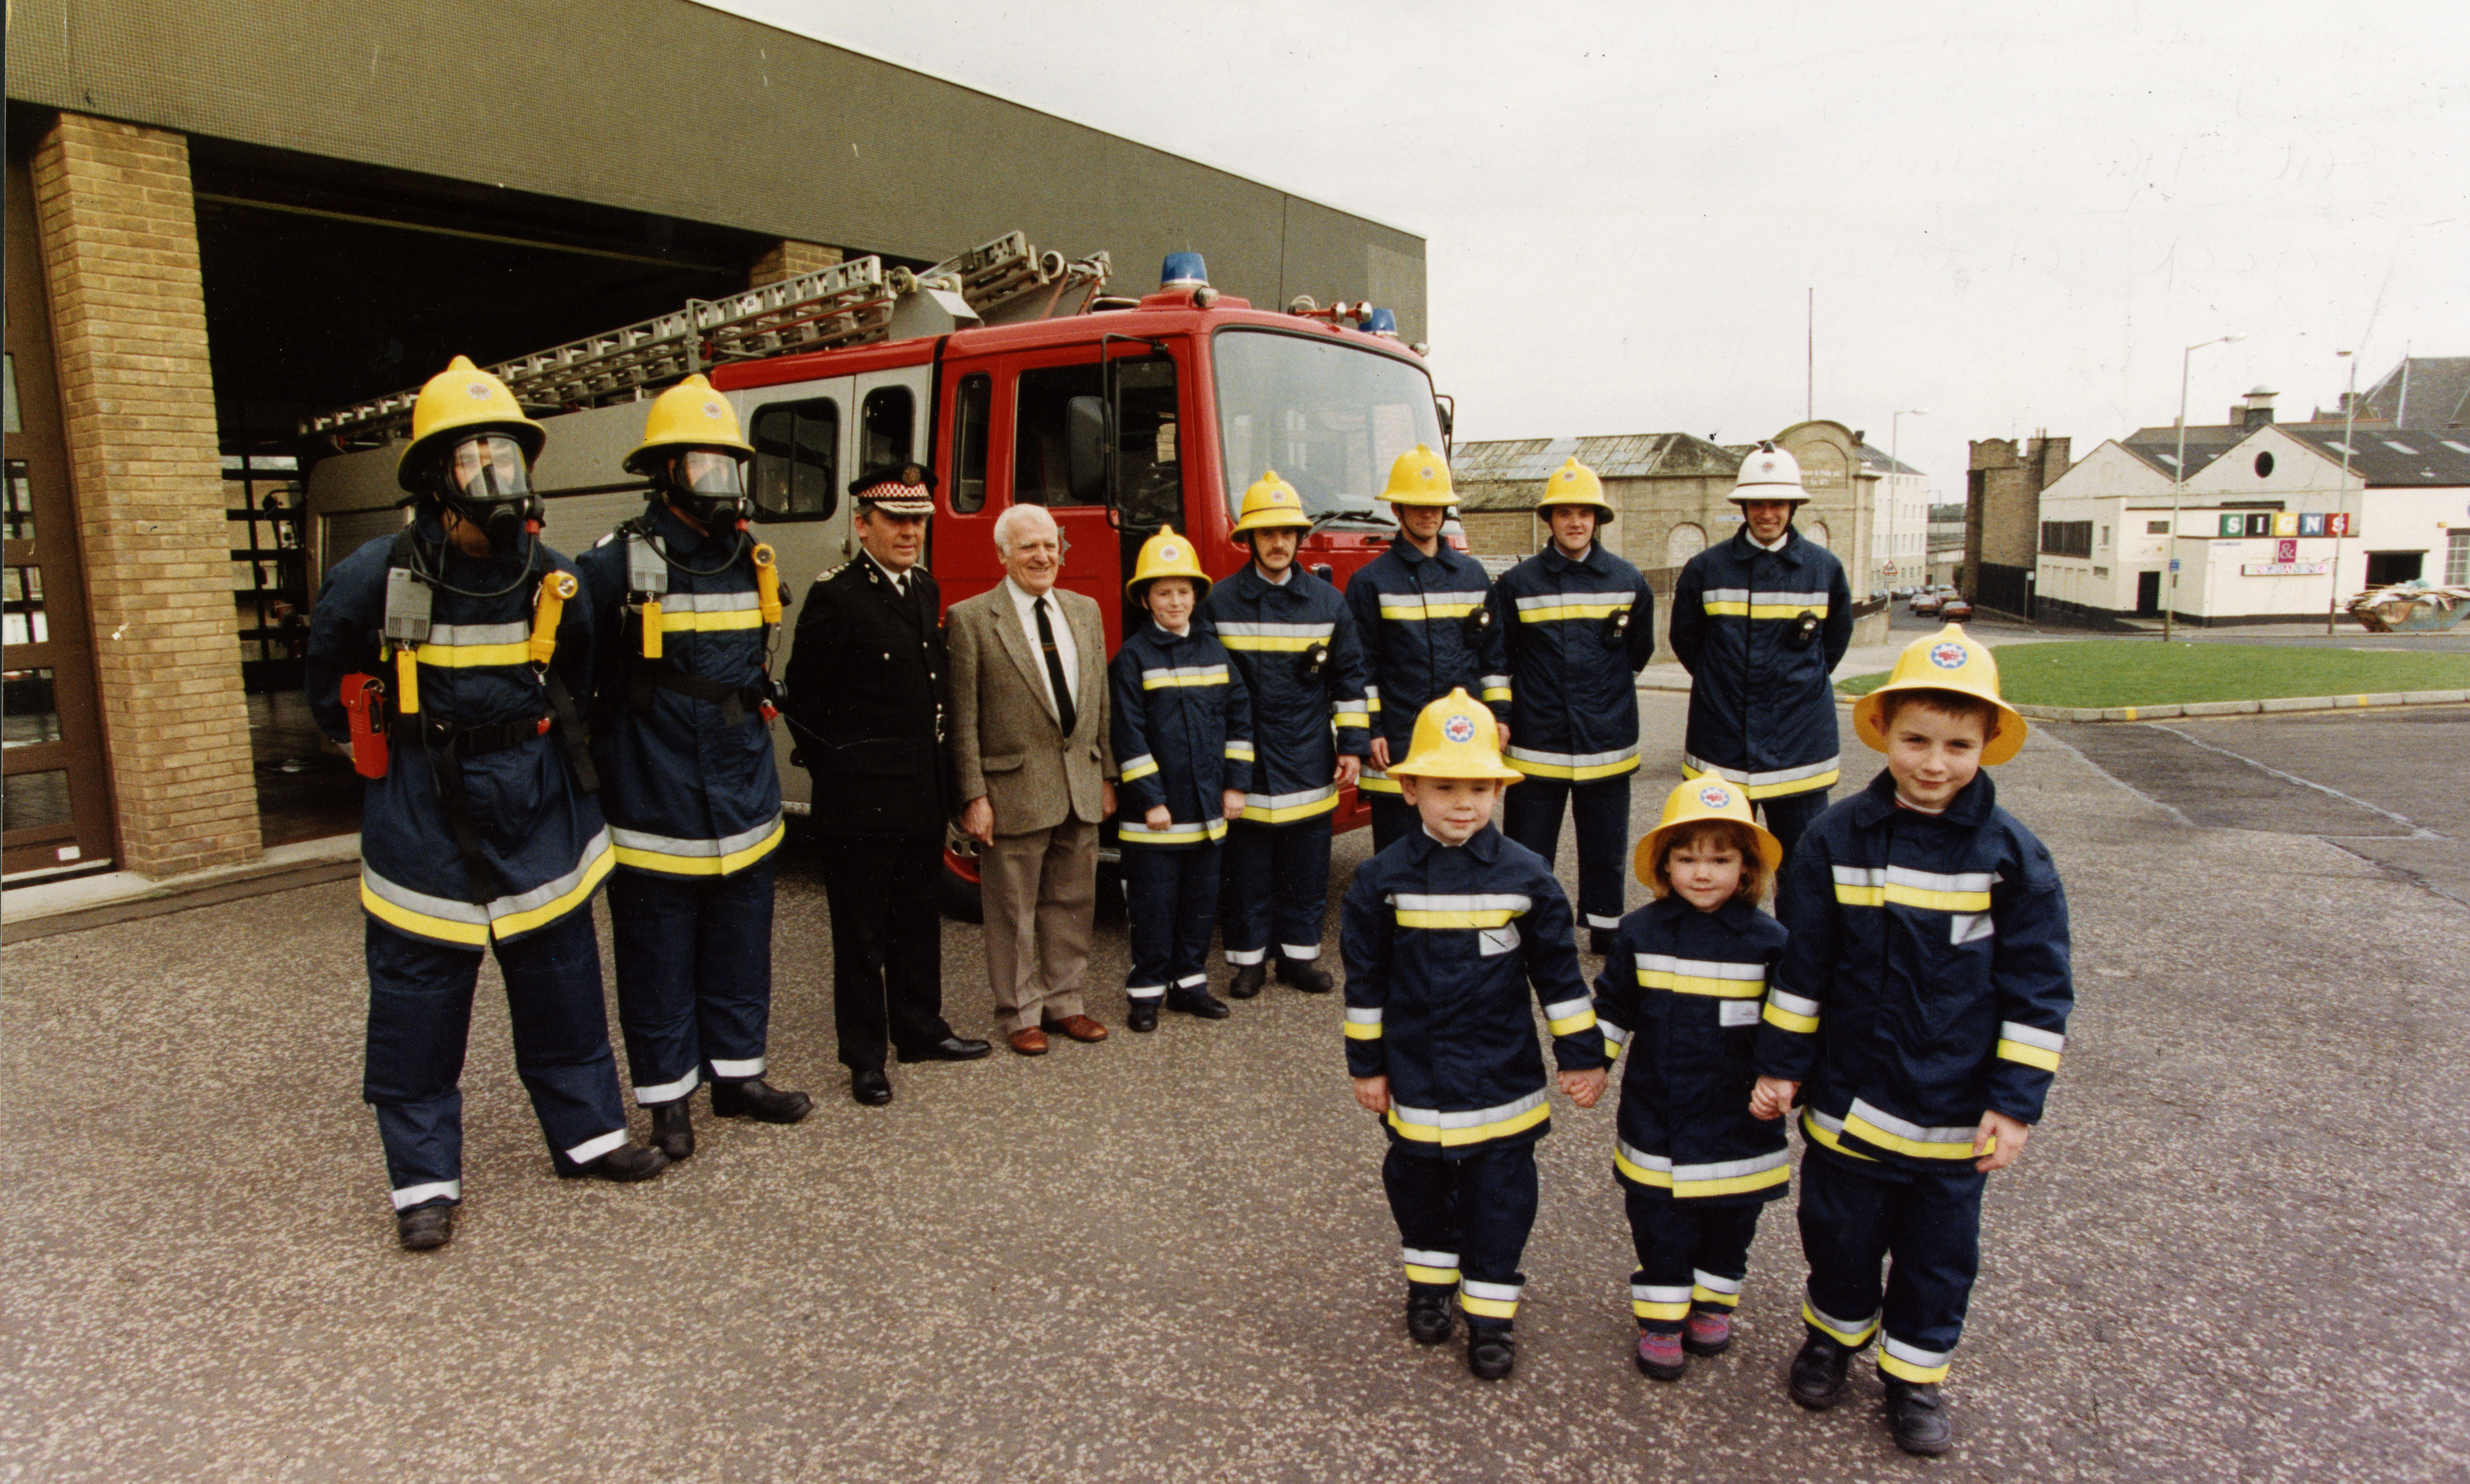 Tayside Fire Brigade model new uniforms at Blackness Road Fire Station, helped by local school children in miniature versions.